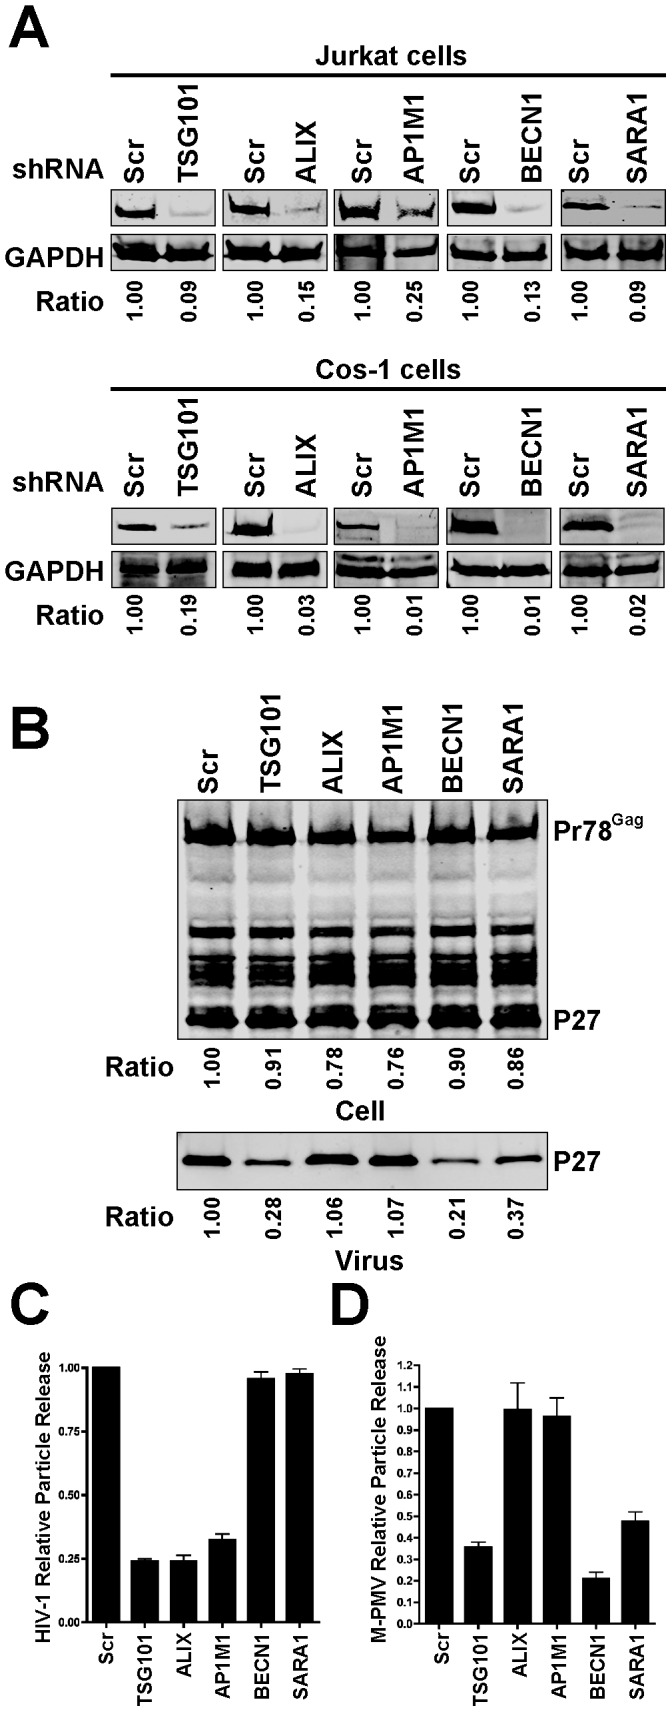 Effect of silencing of TSG101, ALIX1, AP1M1, BECN1 and SARA1 on HIV-1 and M-PMV particle output. (A) Quantitative western blots showing knockdown efficiency of the individual genes in Jurkat cells and Cos-1 cells. Jurkat cells and Cos-1 cells stably expressing control shRNA or specific shRNAs against individual genes were generated, and the cellular levels of the individual proteins examined by immunoblotting. The ratio of the individual protein levels as quantified on the LiCor Odyssey compared to control cell is shown below each blot. (B) The effect of depleting the individual genes on M-PMV particle output. Cos-1 cells stably expressing control shRNA or the indicated shRNAs were transfected with pSARMX M-PMV proviral vector. At 48 hours after transfection, the virions in the supernatant and cell lysates were harvested and subjected to immunoblotting with p27 antibody. The ratio of supernatant p27 and the ratio of the total amount of cellular p27 and Pr78 Gag as quantified on the LiCor Odyssey compared to control cells are shown below each blot. (C) The effect of depleting the individual genes on HIV-1 particle release in Jurkat cells. Control shRNA or specific shRNA expressing Jurkat cells were infected with vesicular stomatitis virus G glycoprotein (VSV-G)-pseudotyped HIV-NL4-3 virus (at 1 TCID 50 ) overnight at 37°C, washed and then seeded in 12-well plates. HIV-1 particle release was assessed using a p24 antigen ELISA 2 days post-infection. Results were expressed as percentage Gag release (supernatant p24/(supernatant + cellular p55/p24)) normalized to control shRNA-expressing cells. Error bars indicate the standard deviation of three independent experiments. (D) Quantitative analysis of the effect of depleting the individual genes on M-PMV particle release. M-PMV particle release in the control shRNA or specific shRNA expressing Cos-1 cells was assessed by immunoblotting with p27 antibody. The supernatant p27 and cellular p27 and Pr78 Gag were quantified on t